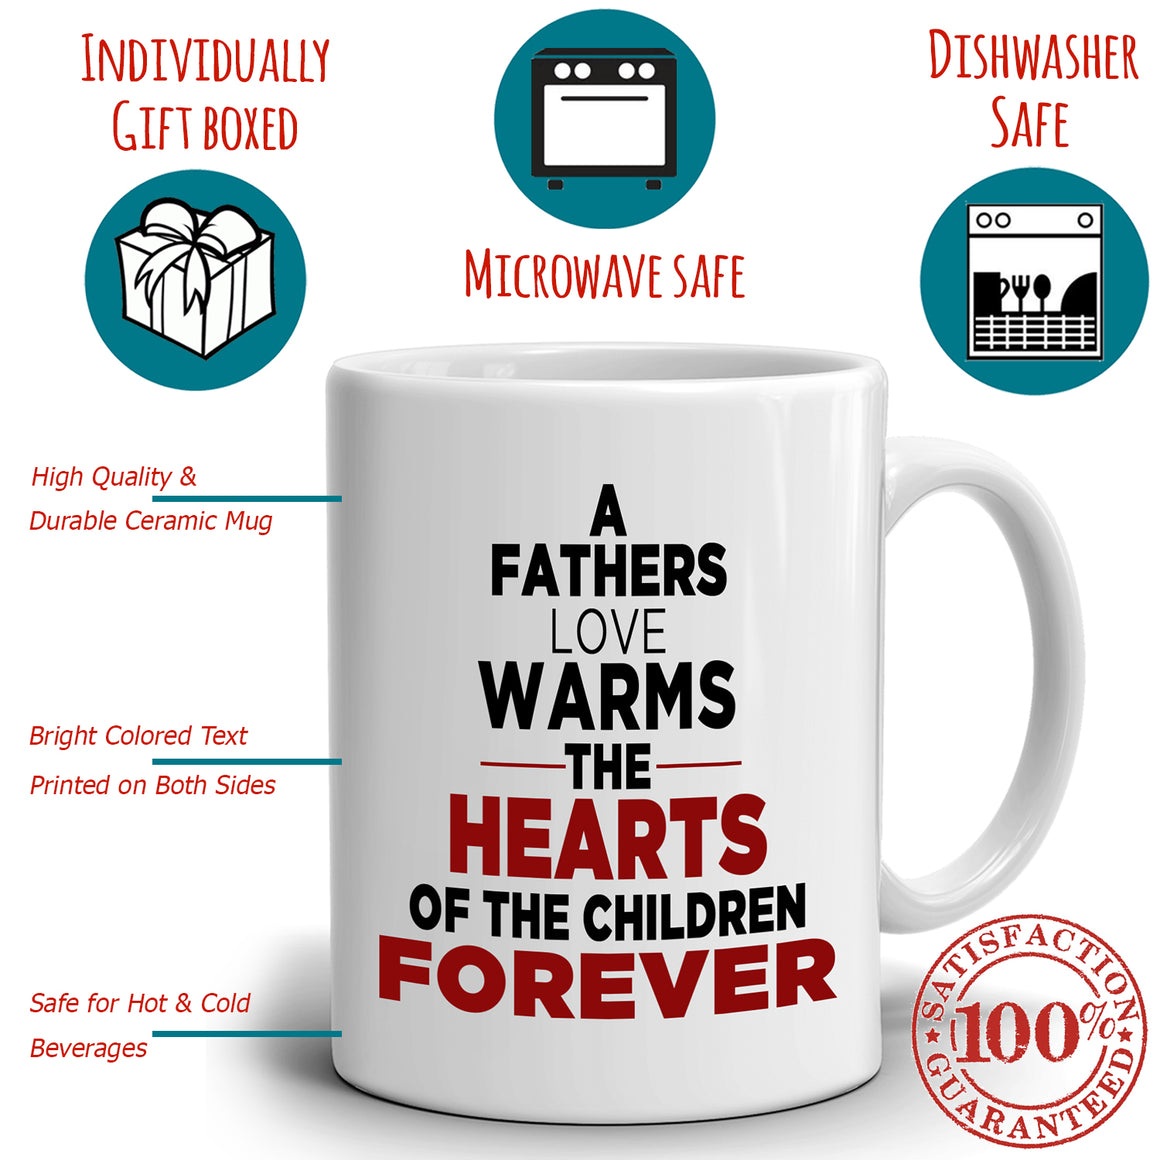 Inspirational Dad Grandpa Birthday Gifts Mug A Fathers Love Warms The Hearts Of The Children Forever, Printed on Both Sides!